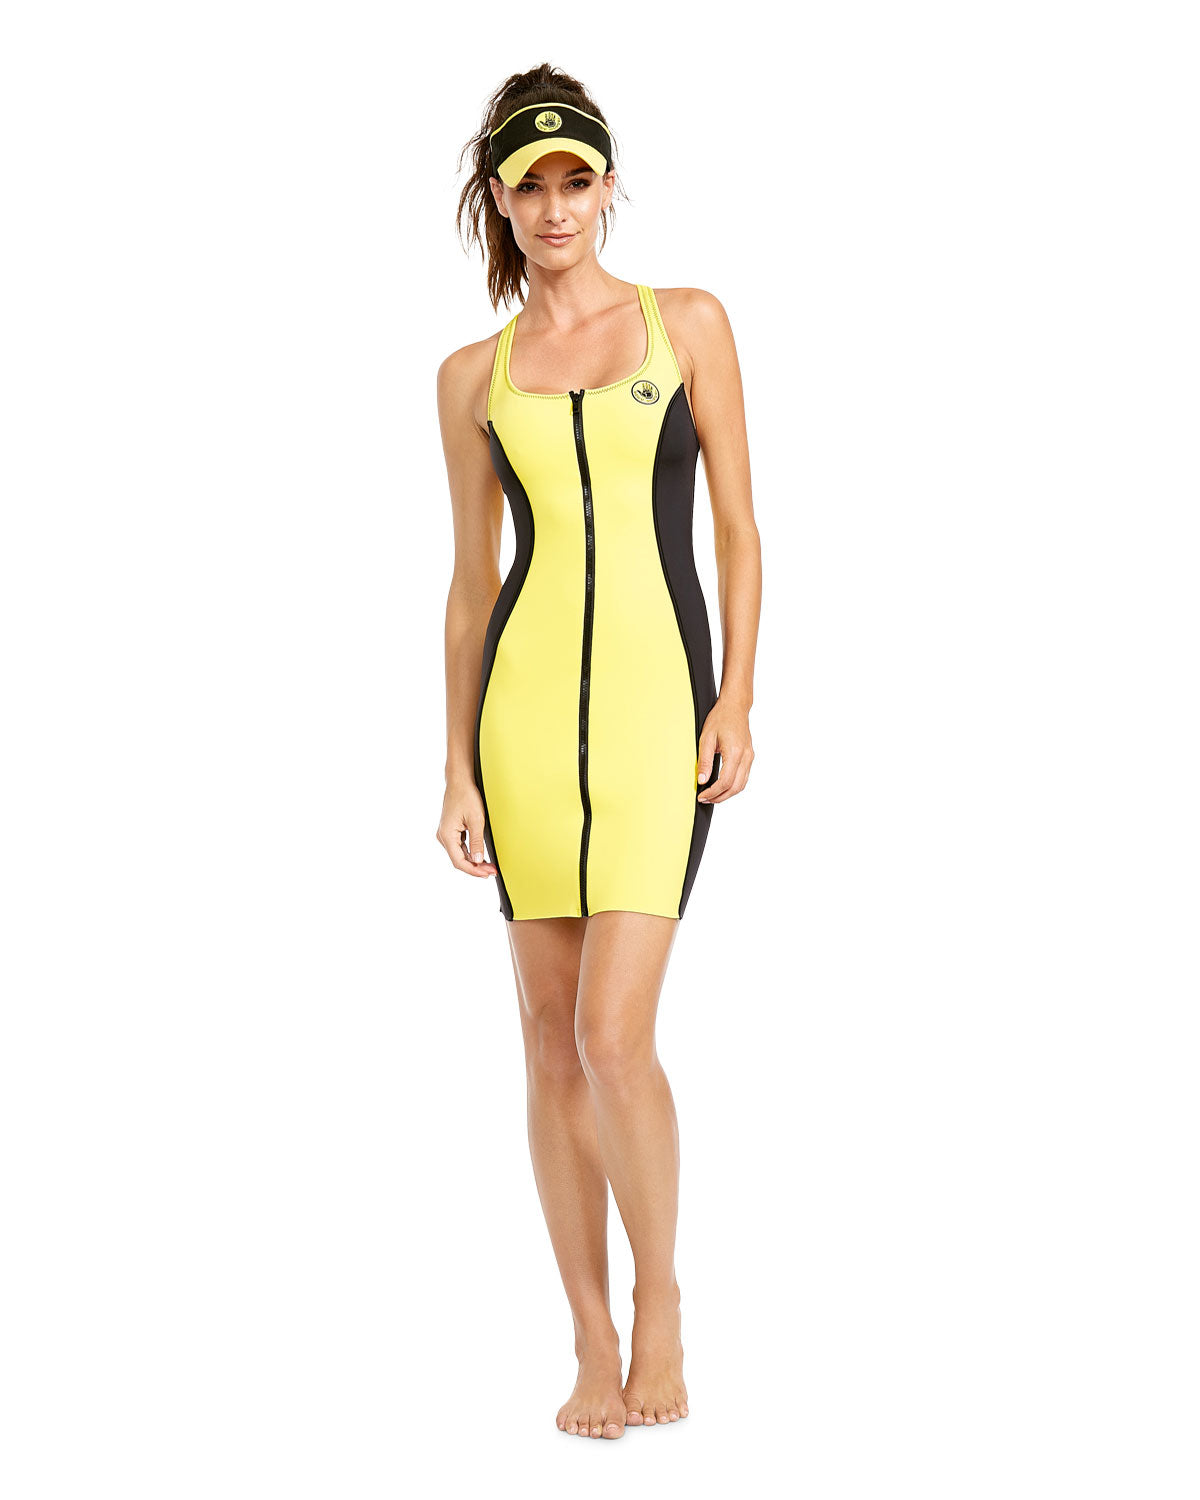 '80s Throwback Simply Irresistible Dress - Yellow